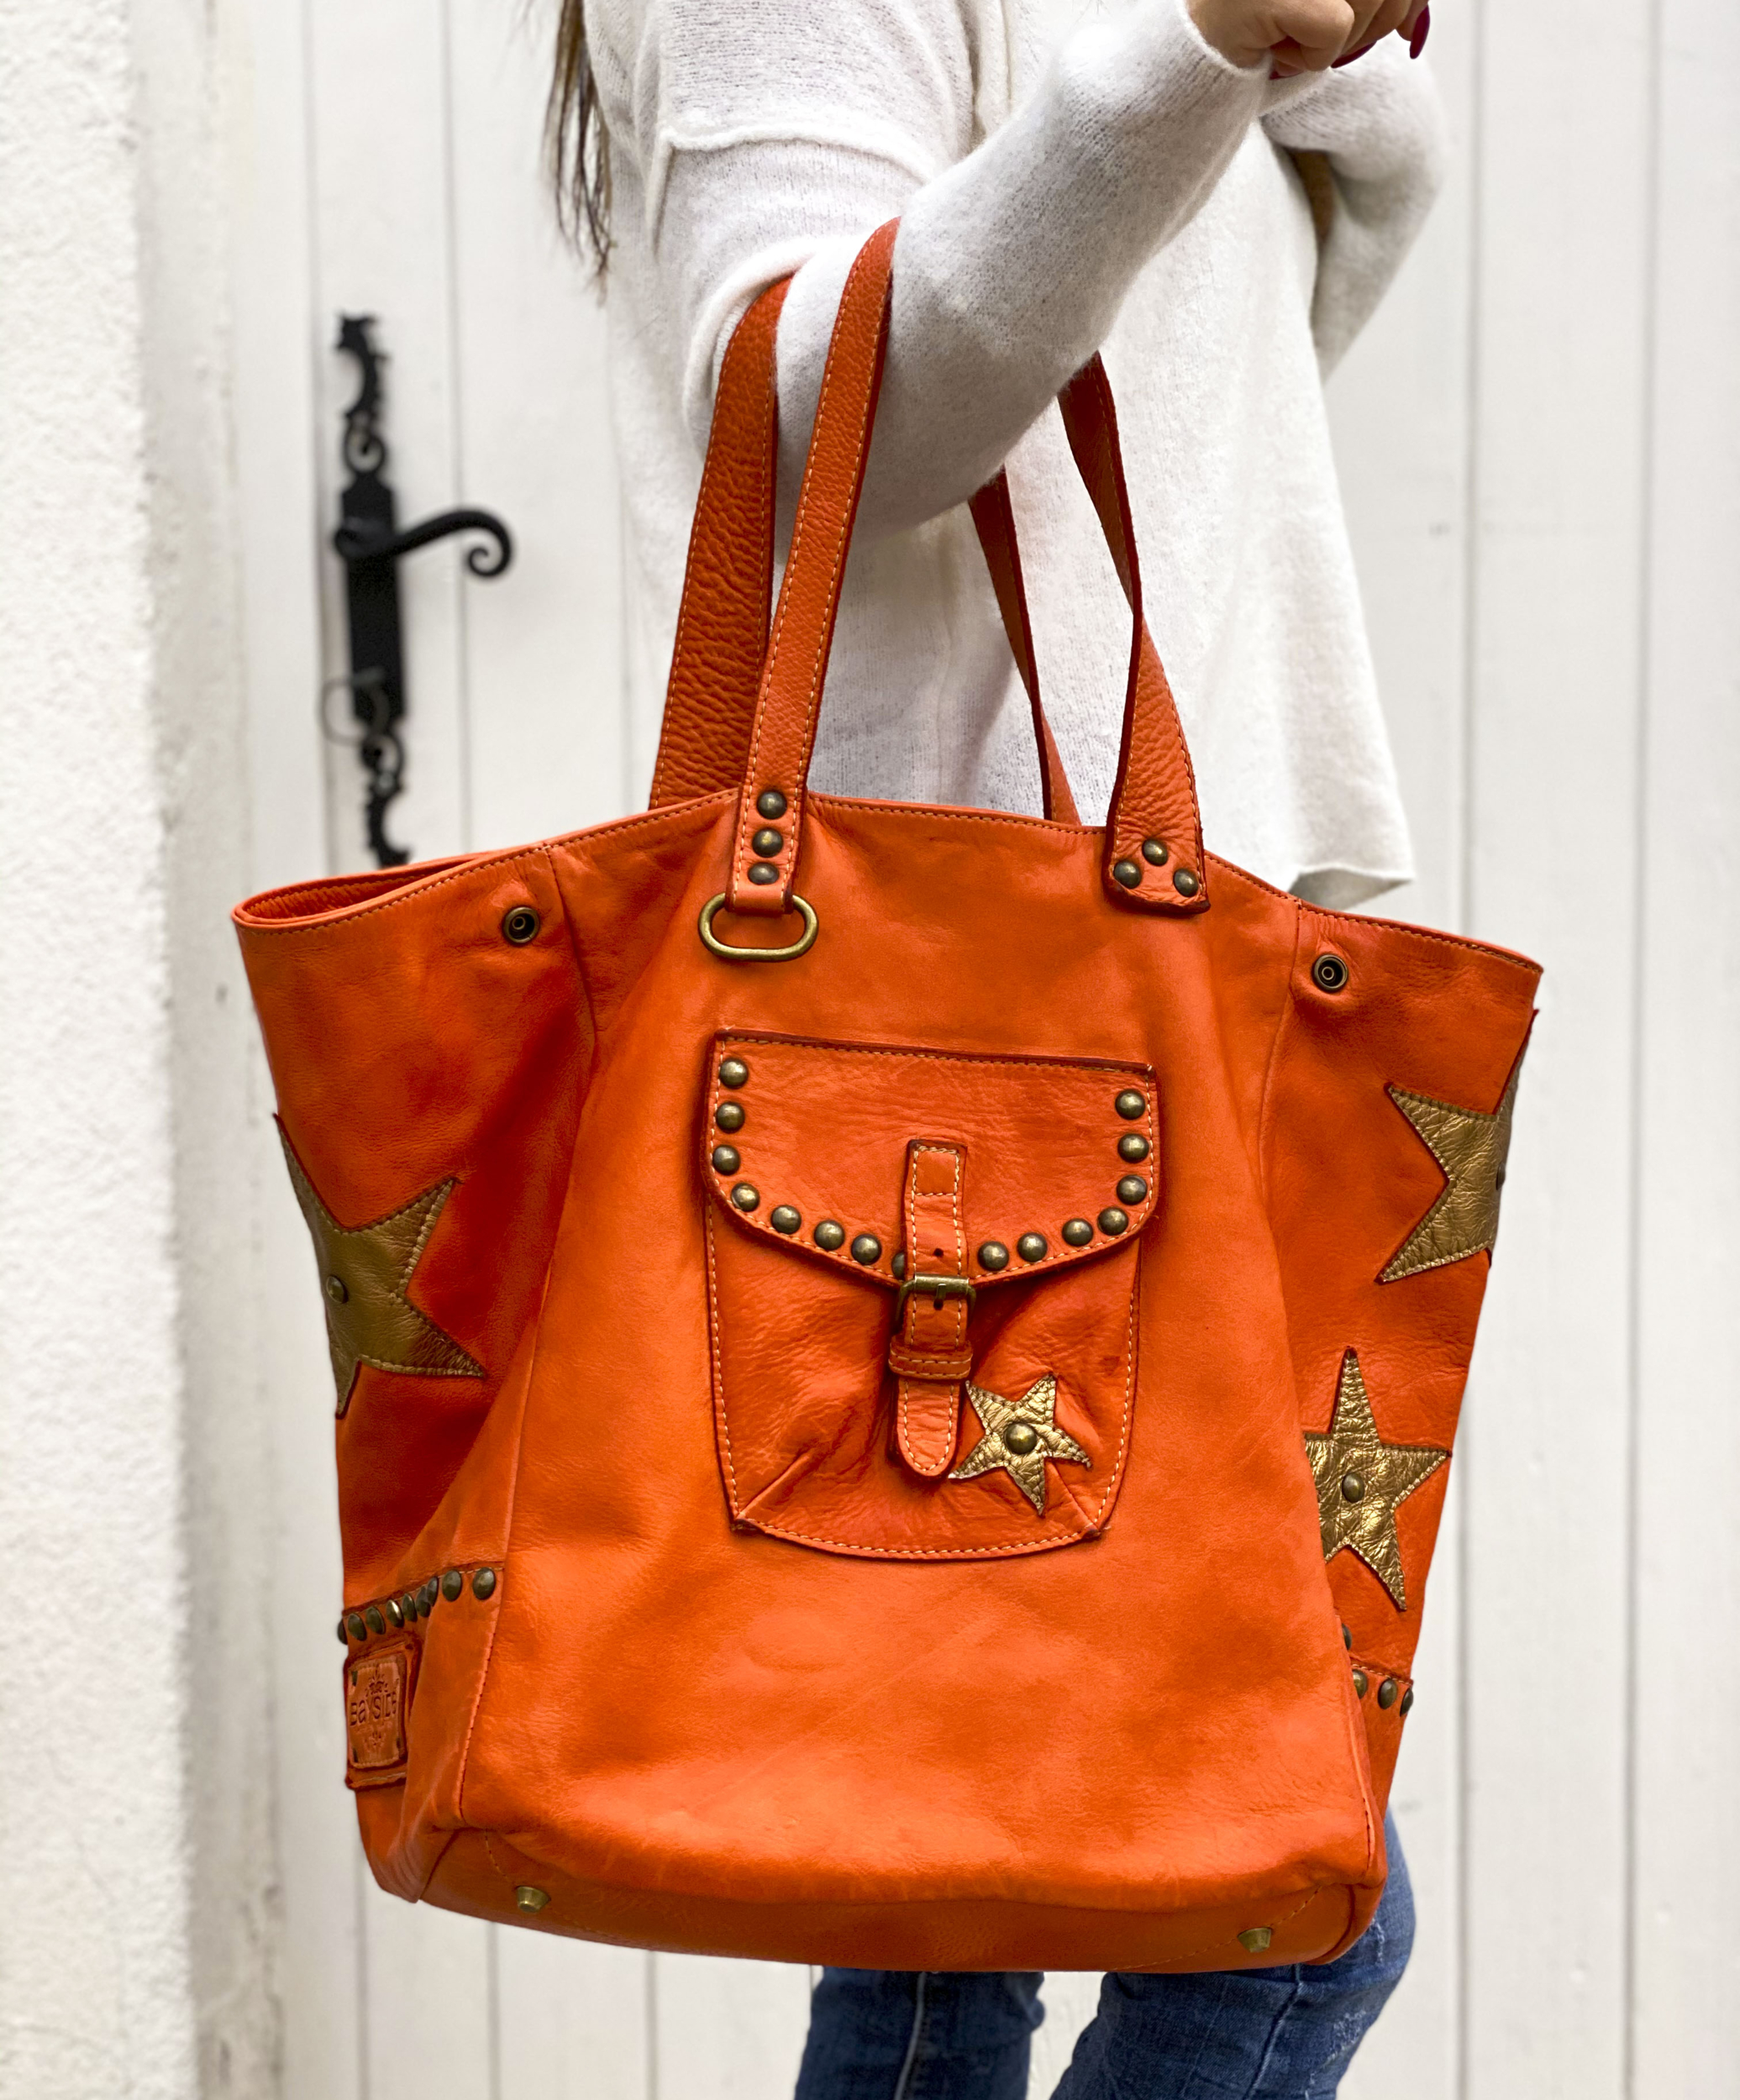 Sac CHIARA orange